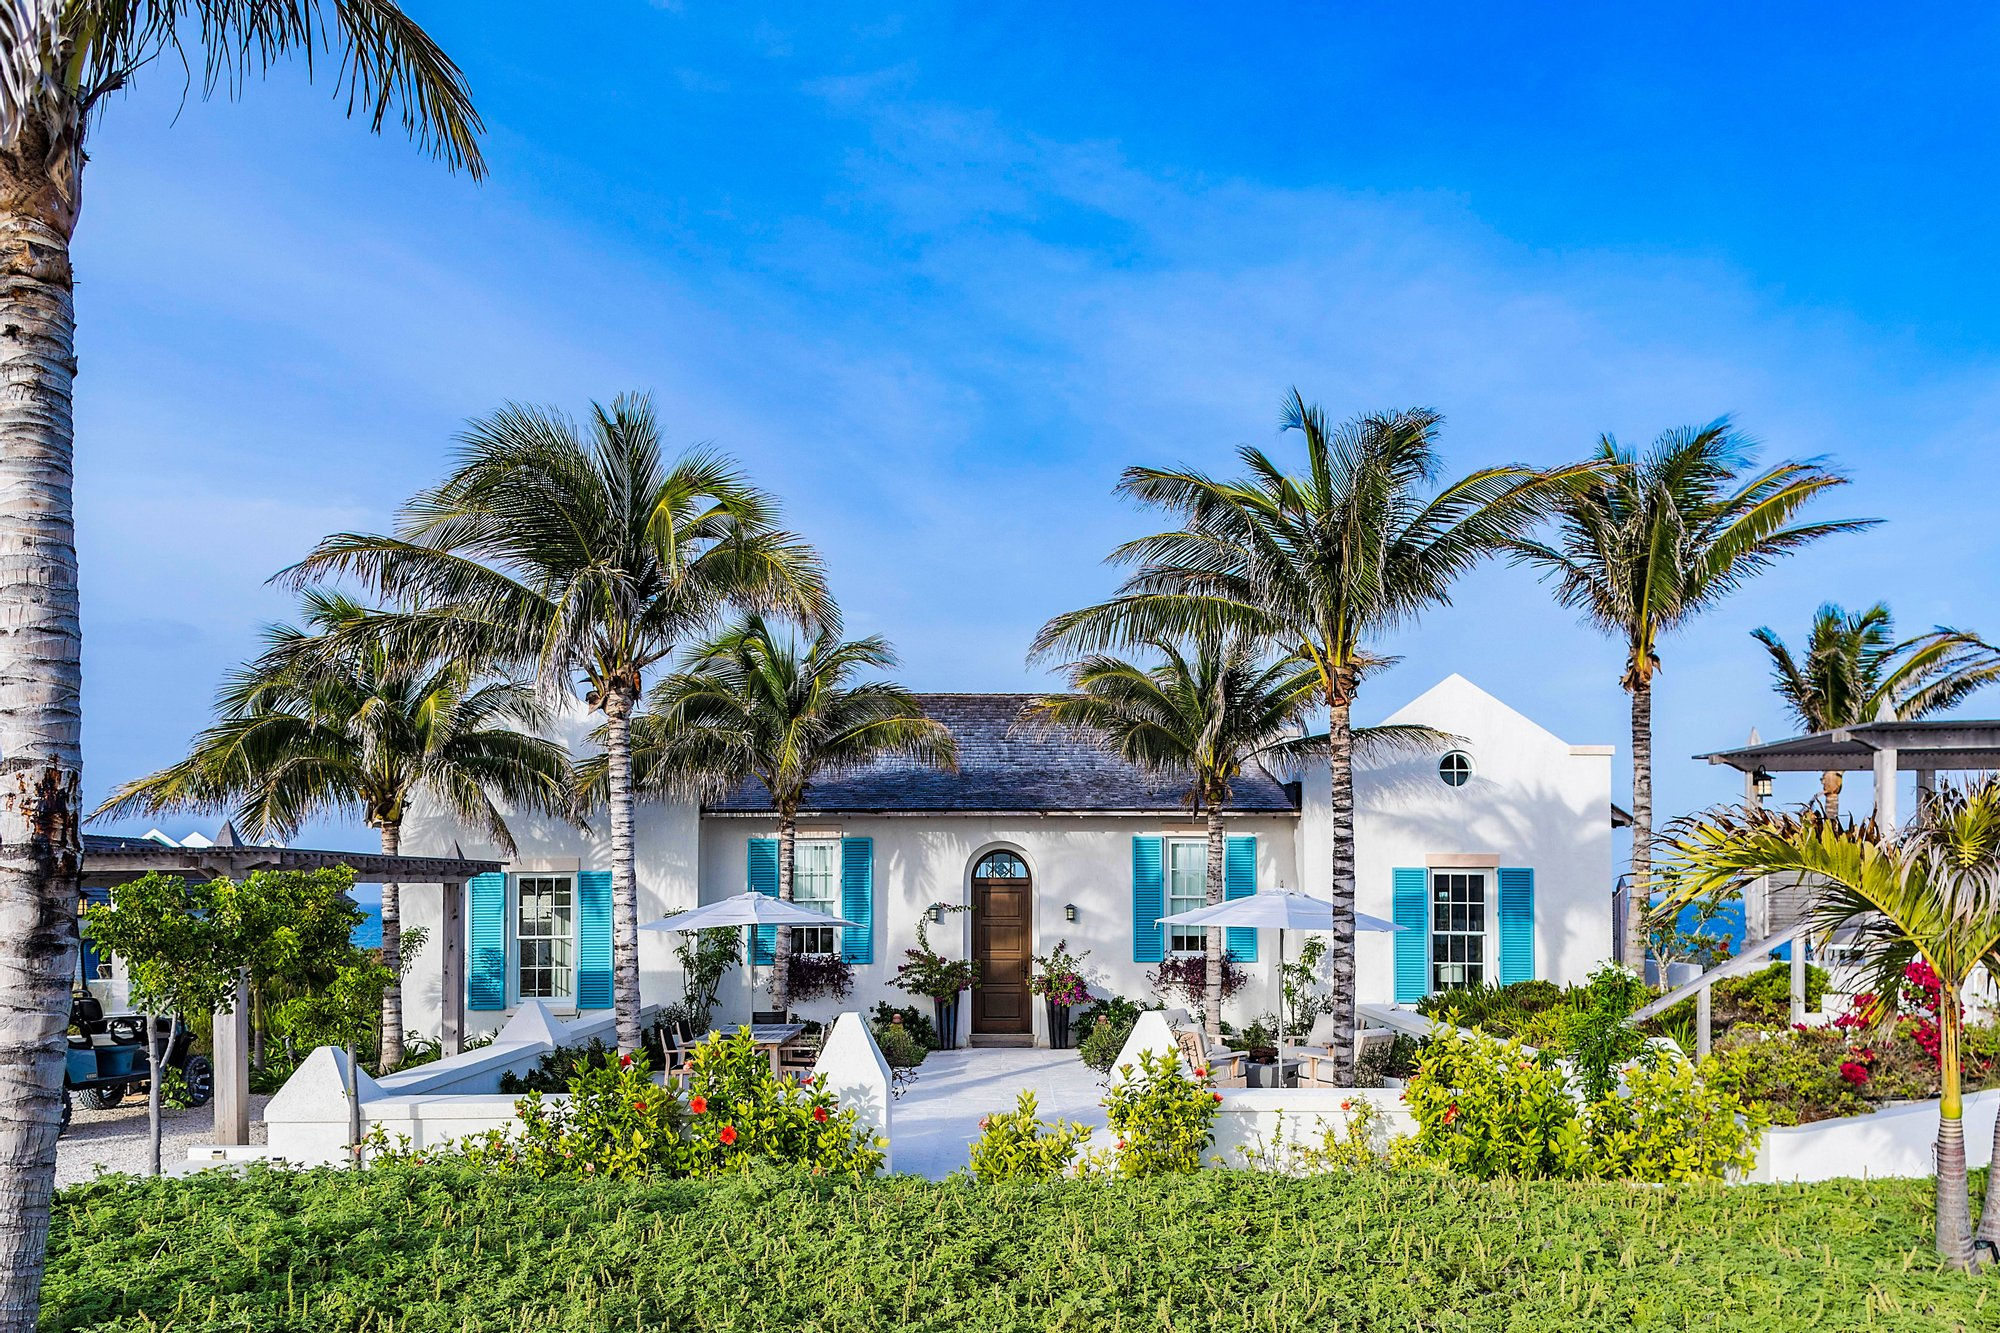 Villa in Ambergris Cay, Turks and Caicos Islands 1 - 11548860